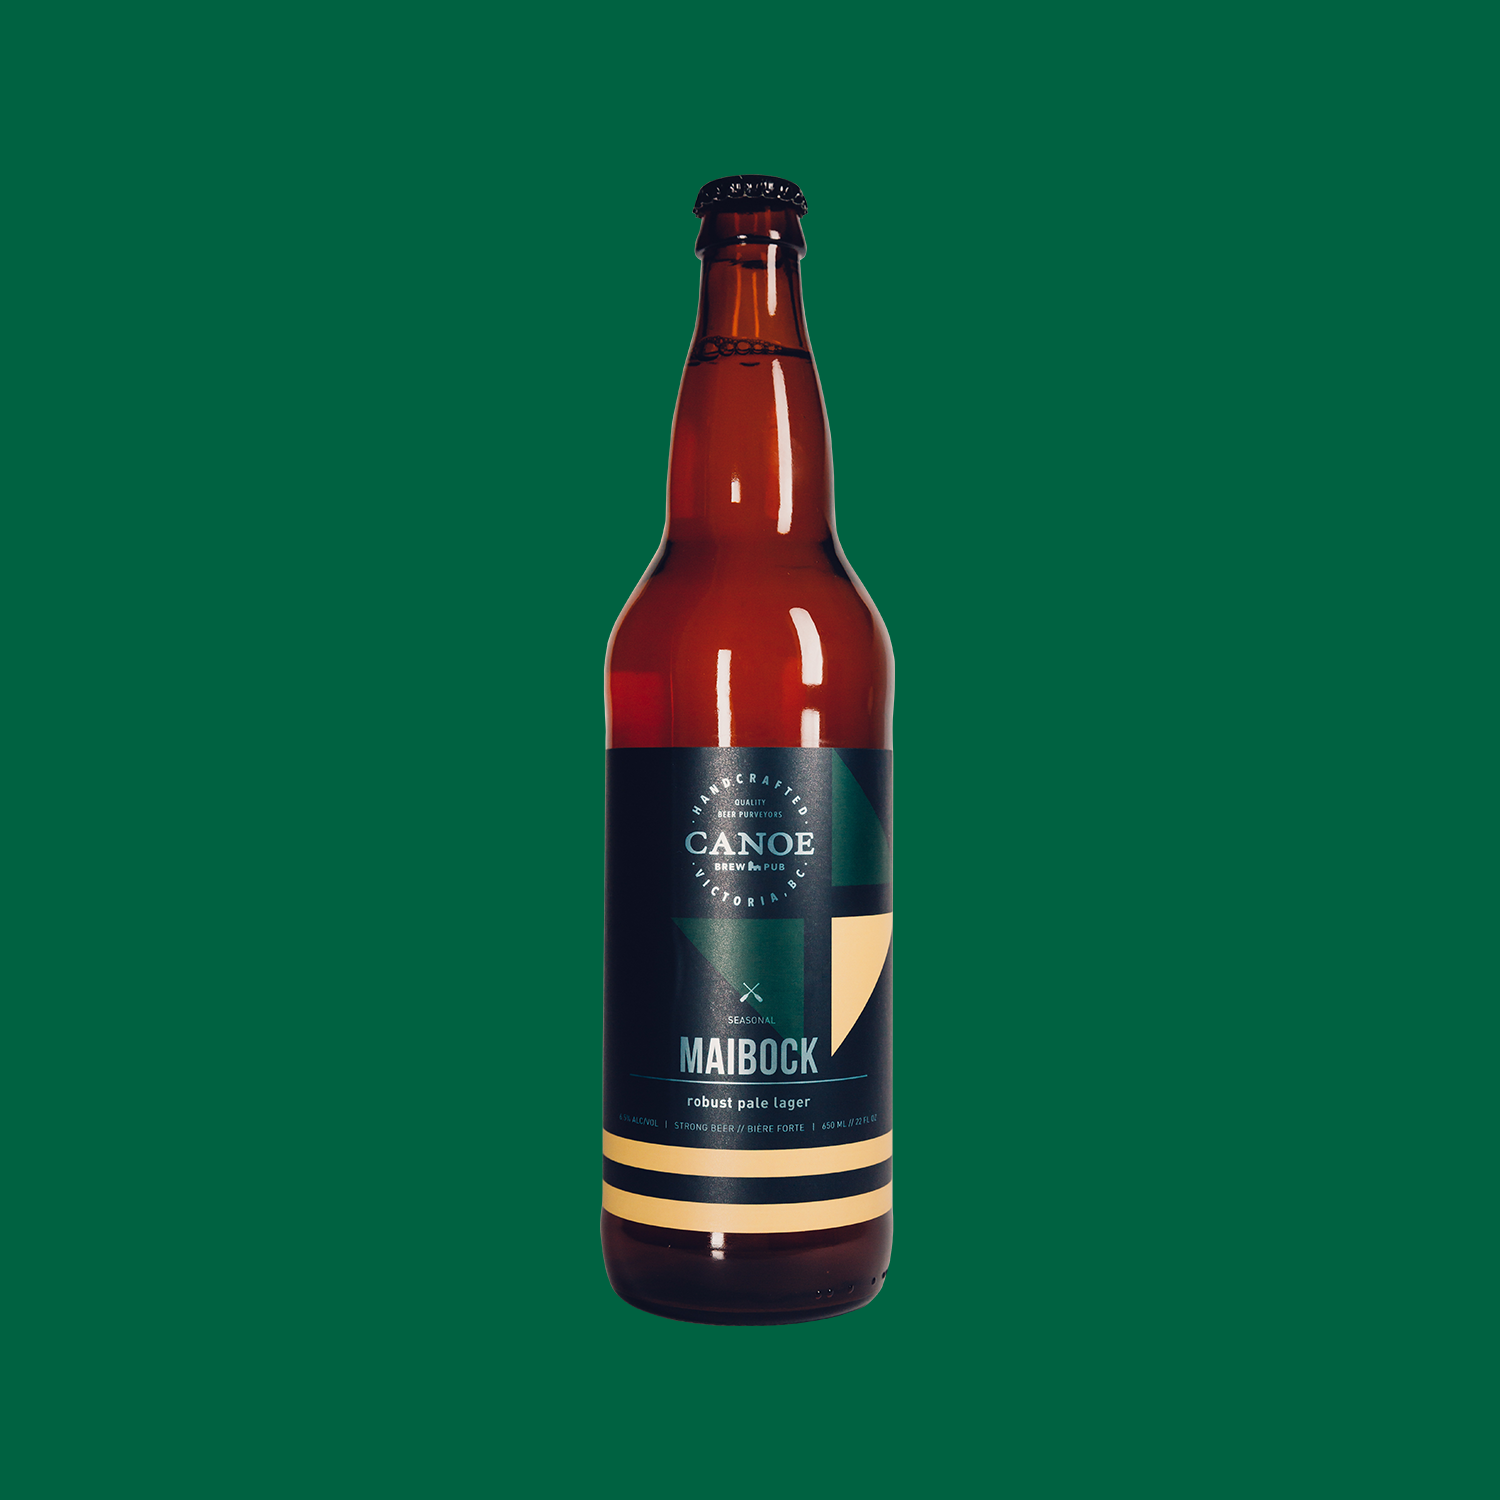 Maibock - A robust pale lager.A close relative of Helles, Maibock is a golden lager brewed to a higher strength. Full, flavourful, with subtle, spicy hop aroma and rich, satisfying body.ALC: 6.5%IBU: 22 (low bitterness/hoppiness)Malt: Moderate